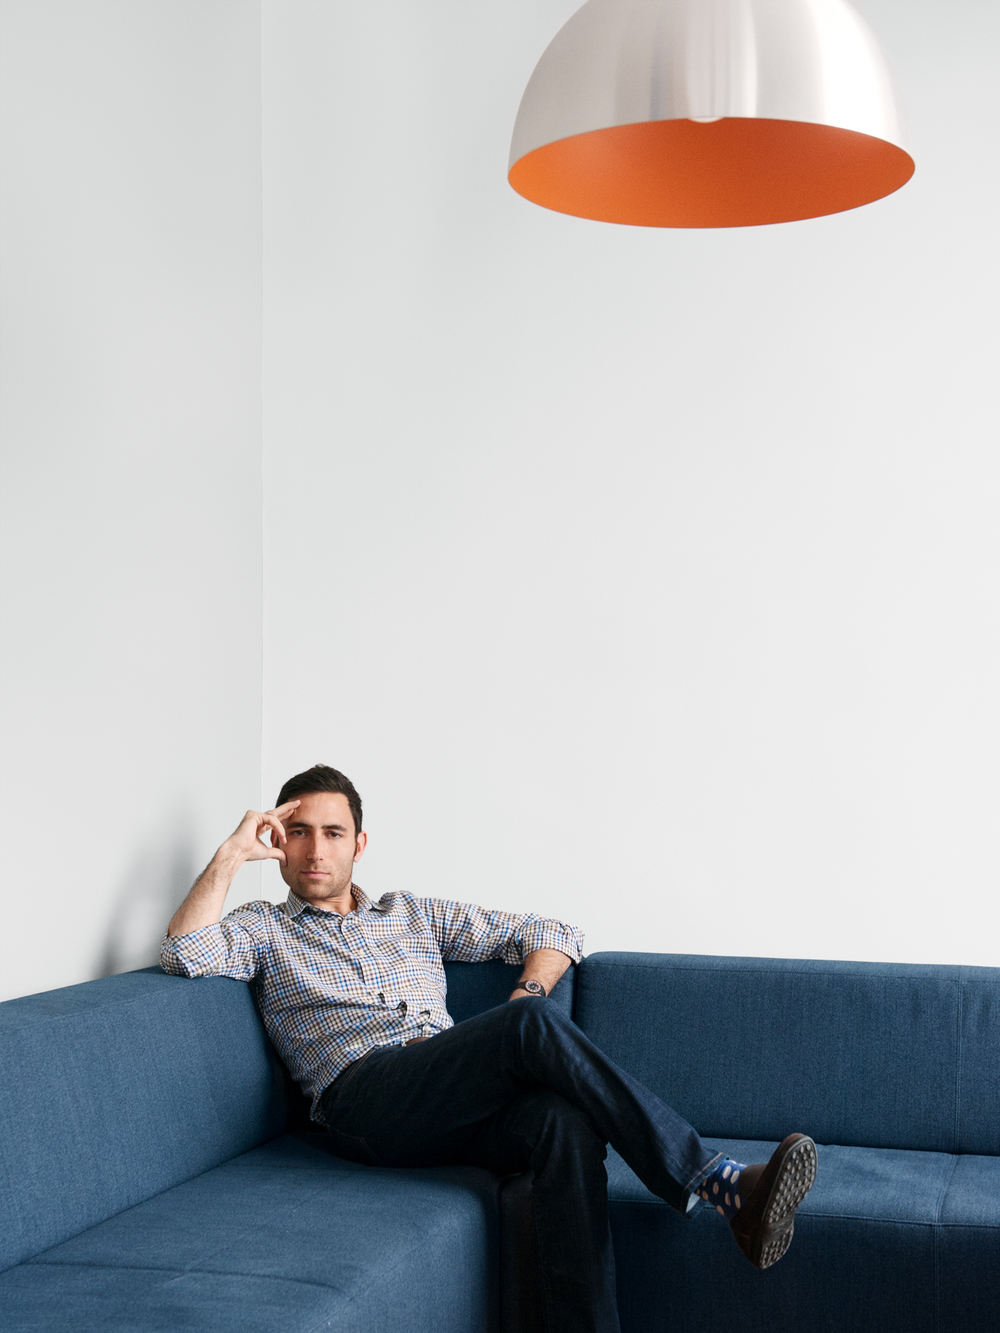 Scott Belsky, Co-founder of Behance